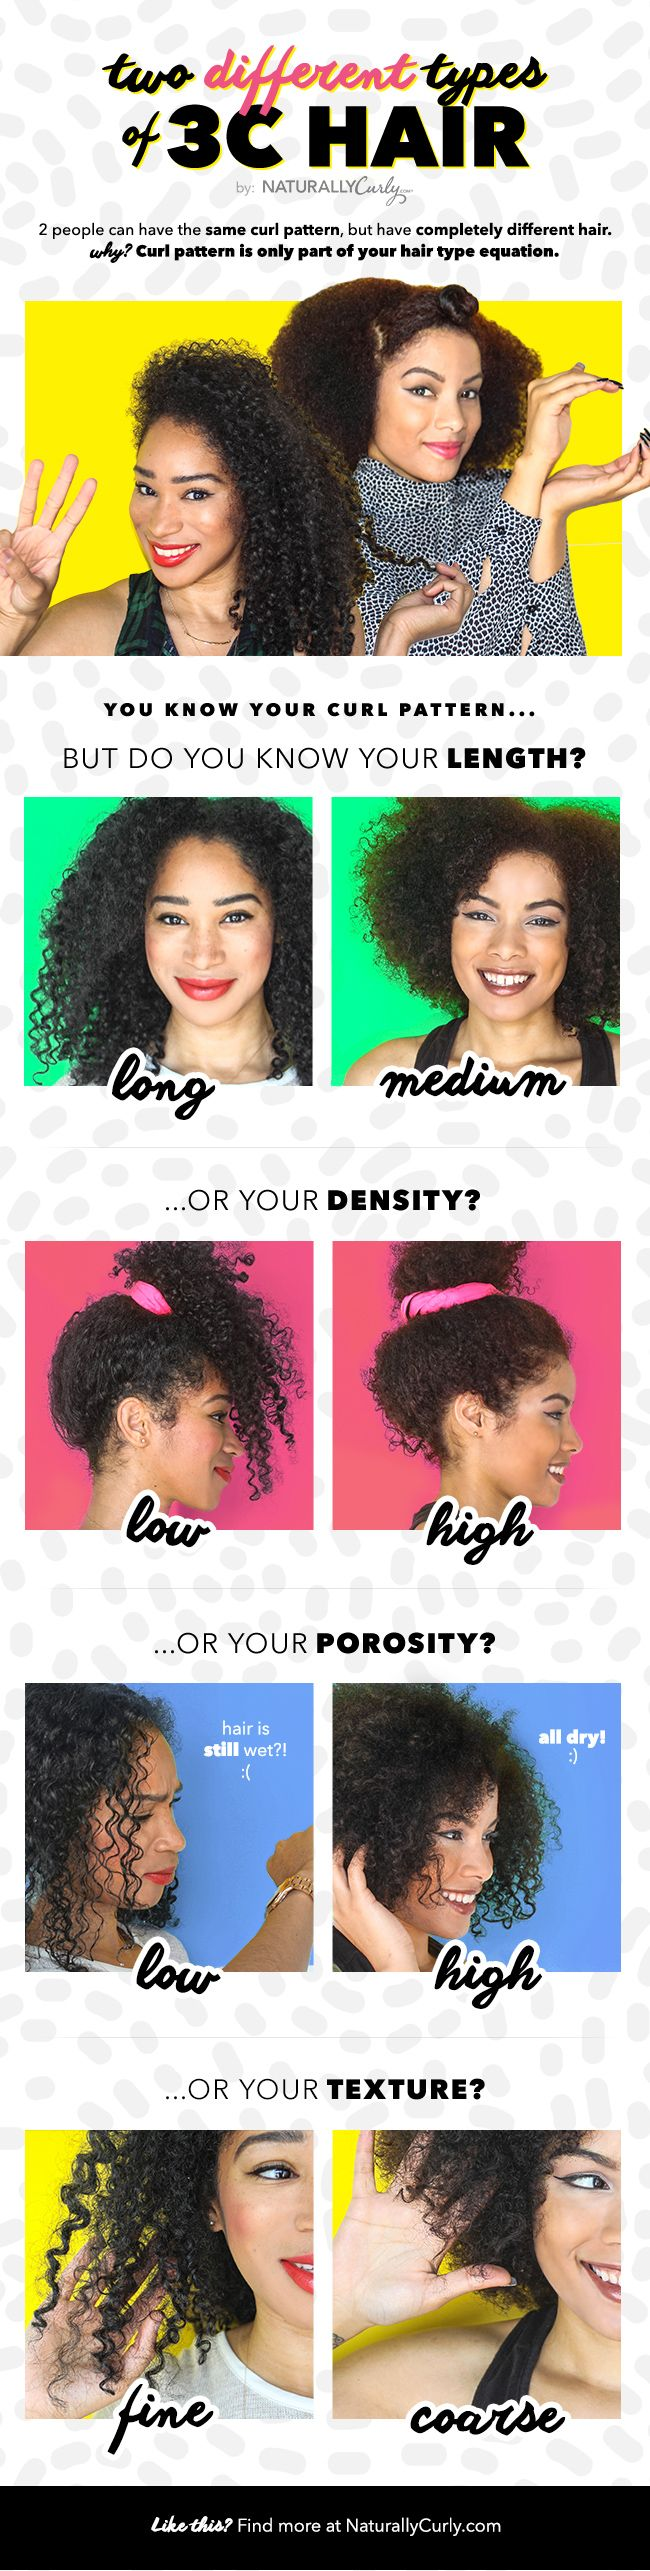 Why your hair doesn't look like hers, even though you're the same curl pattern